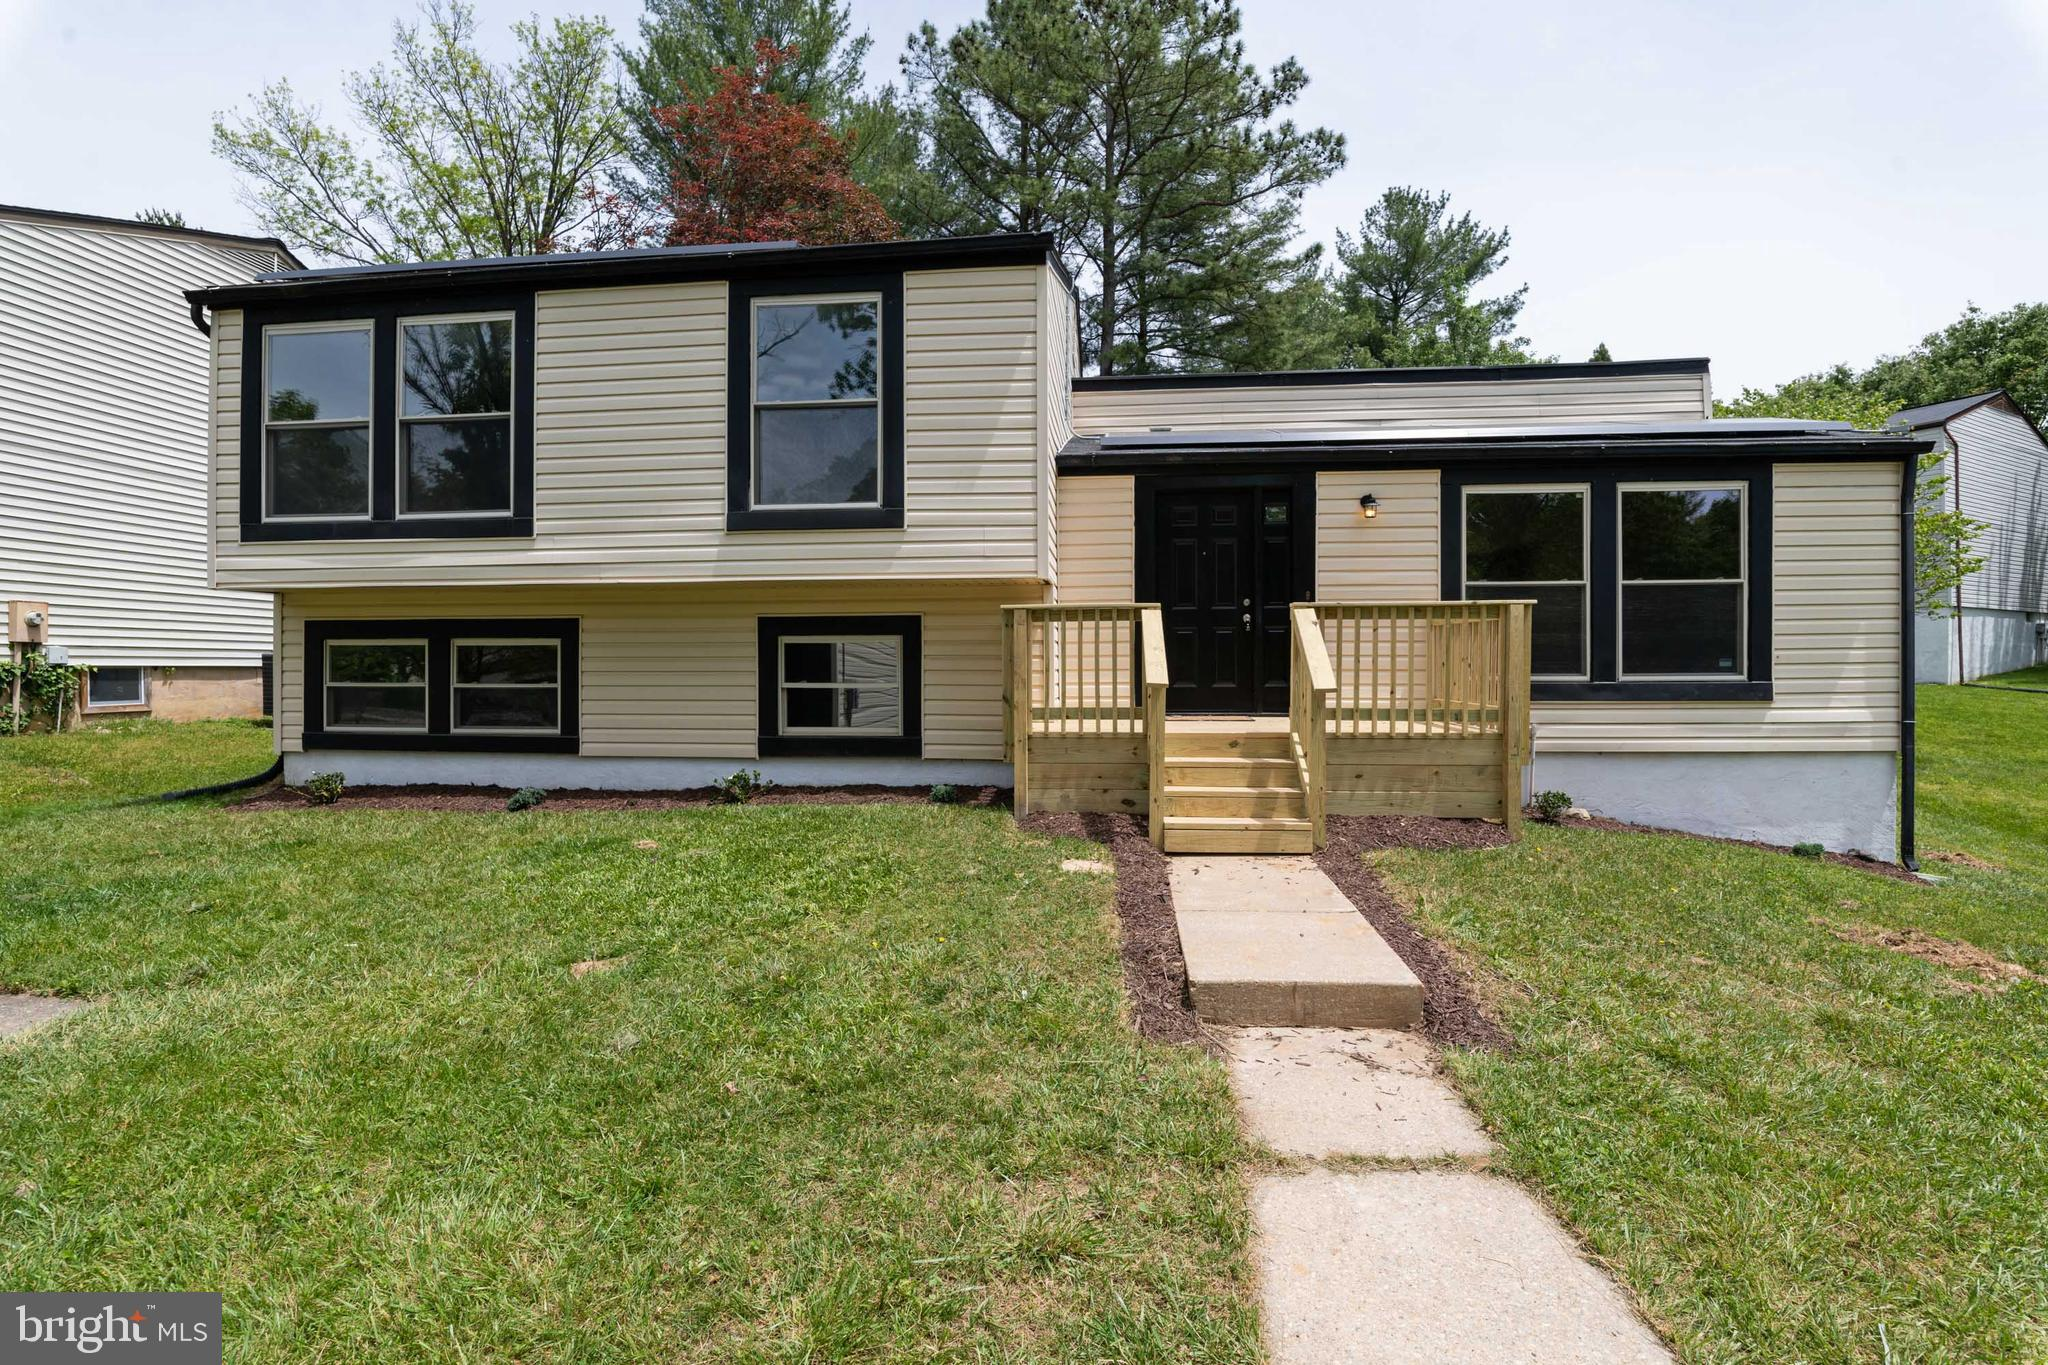 renovated - new kitchen, new bathrooms, freshly painted, new flooring, new deck (front and rear) - l